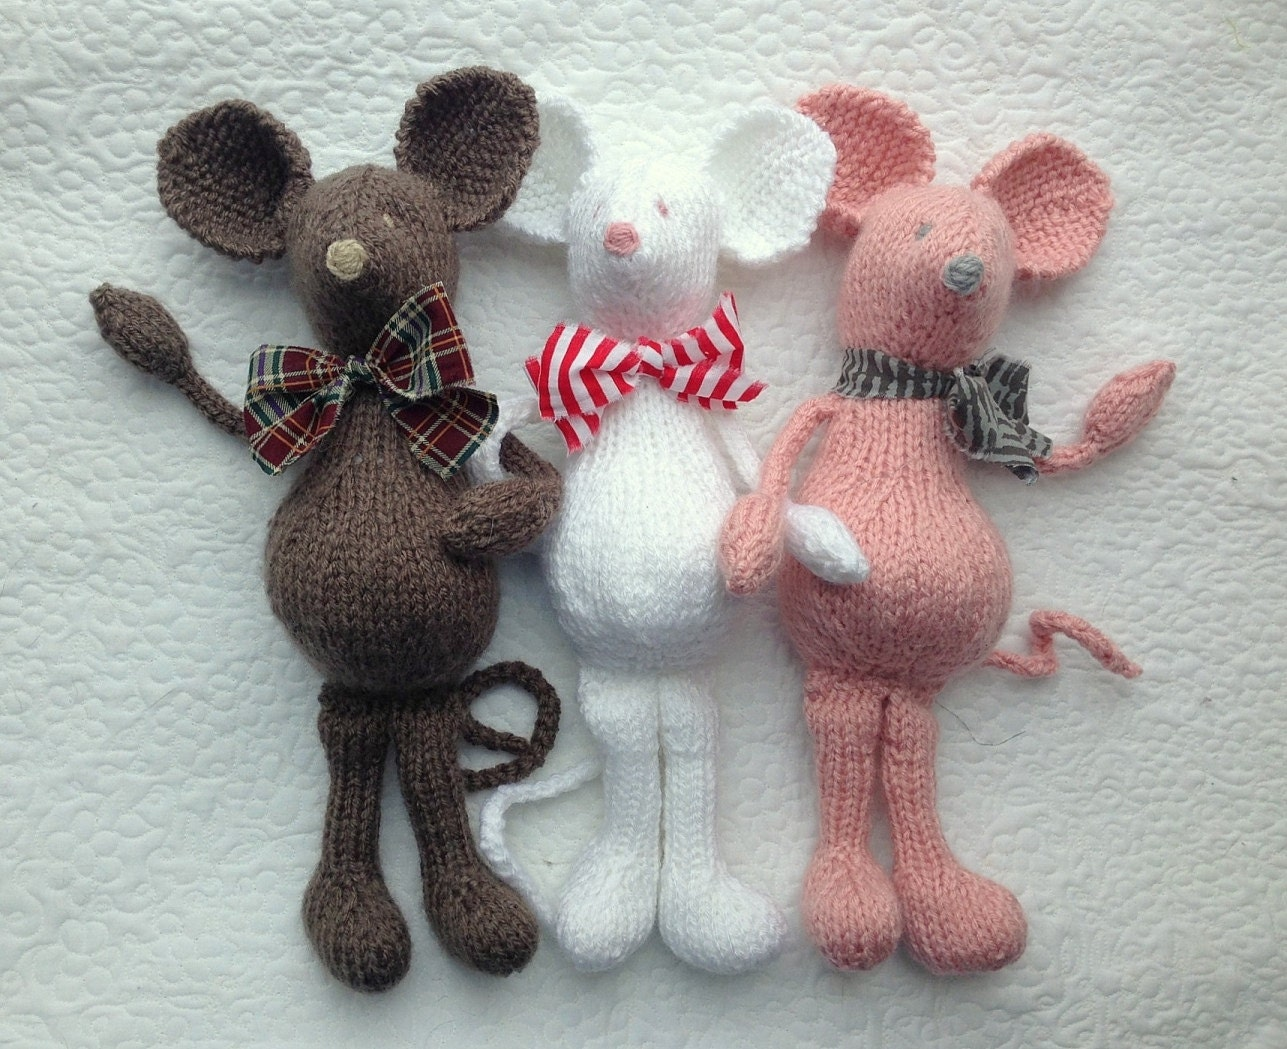 MoUSE KNiTTING PaTTERN Soft Toy PDF PaTTeRN ONLY Heirloom